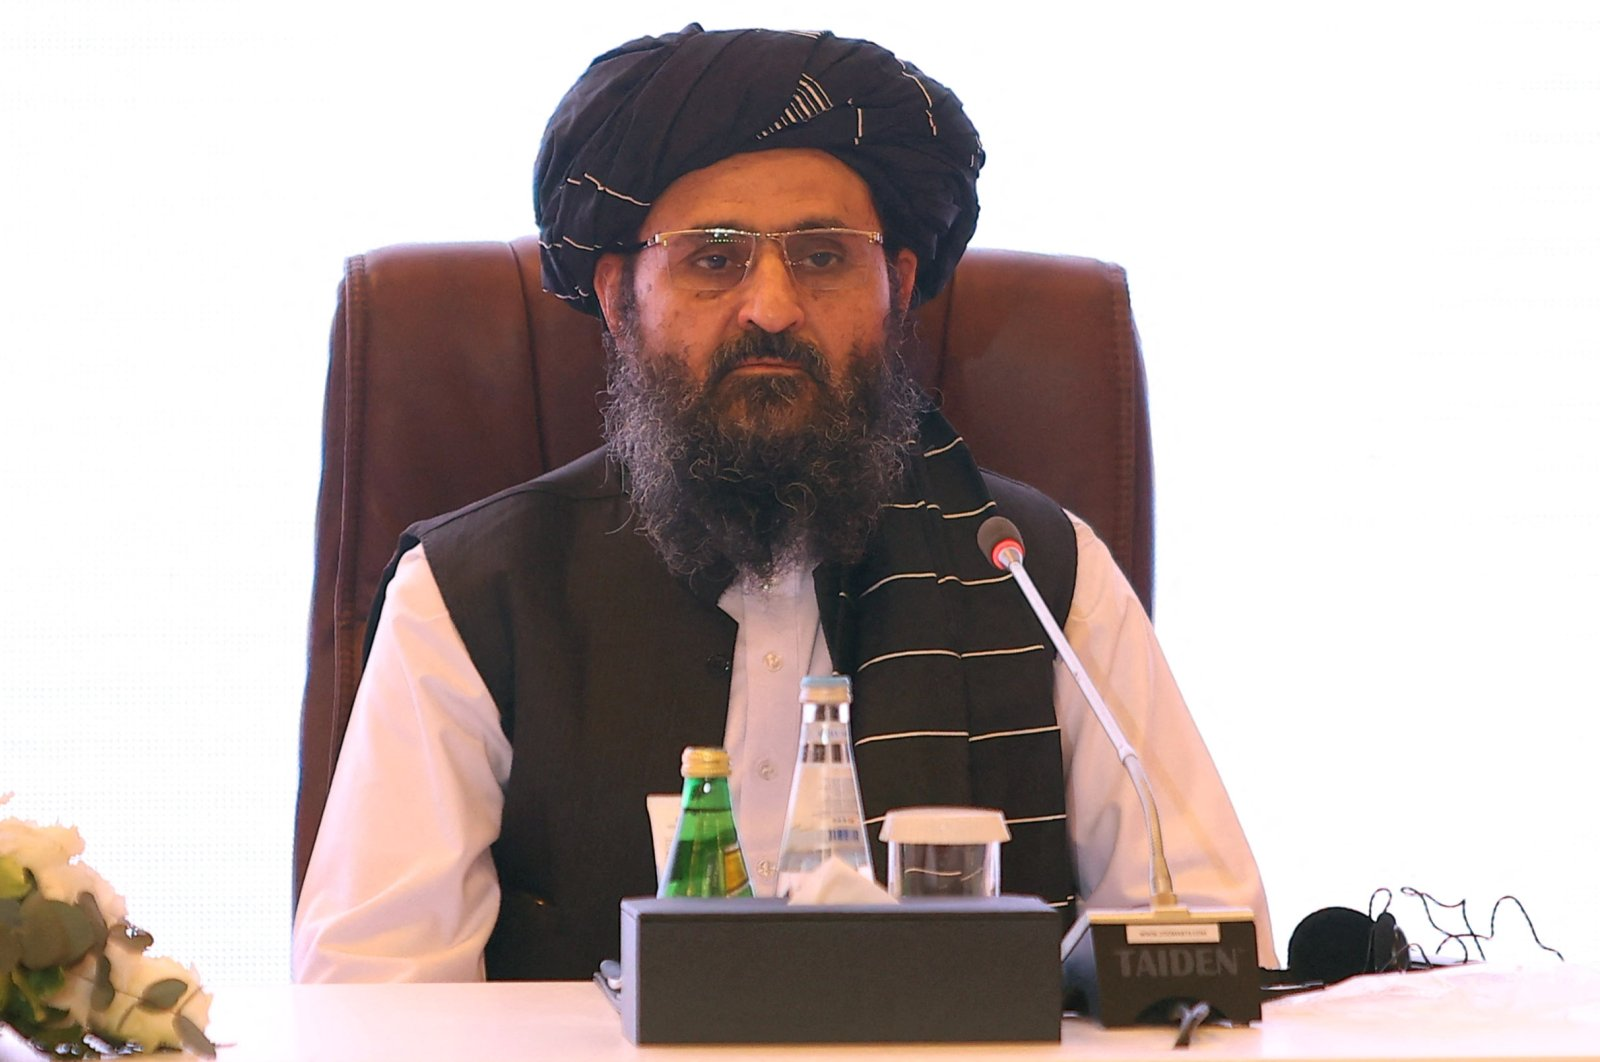 The leader of the Taliban negotiating team, Mullah Abdul Ghani Baradar, attends the final declaration of the peace talks between the Afghan government and the Taliban presented in Qatar's capital Doha, July 18, 2021. (AFP Photo)